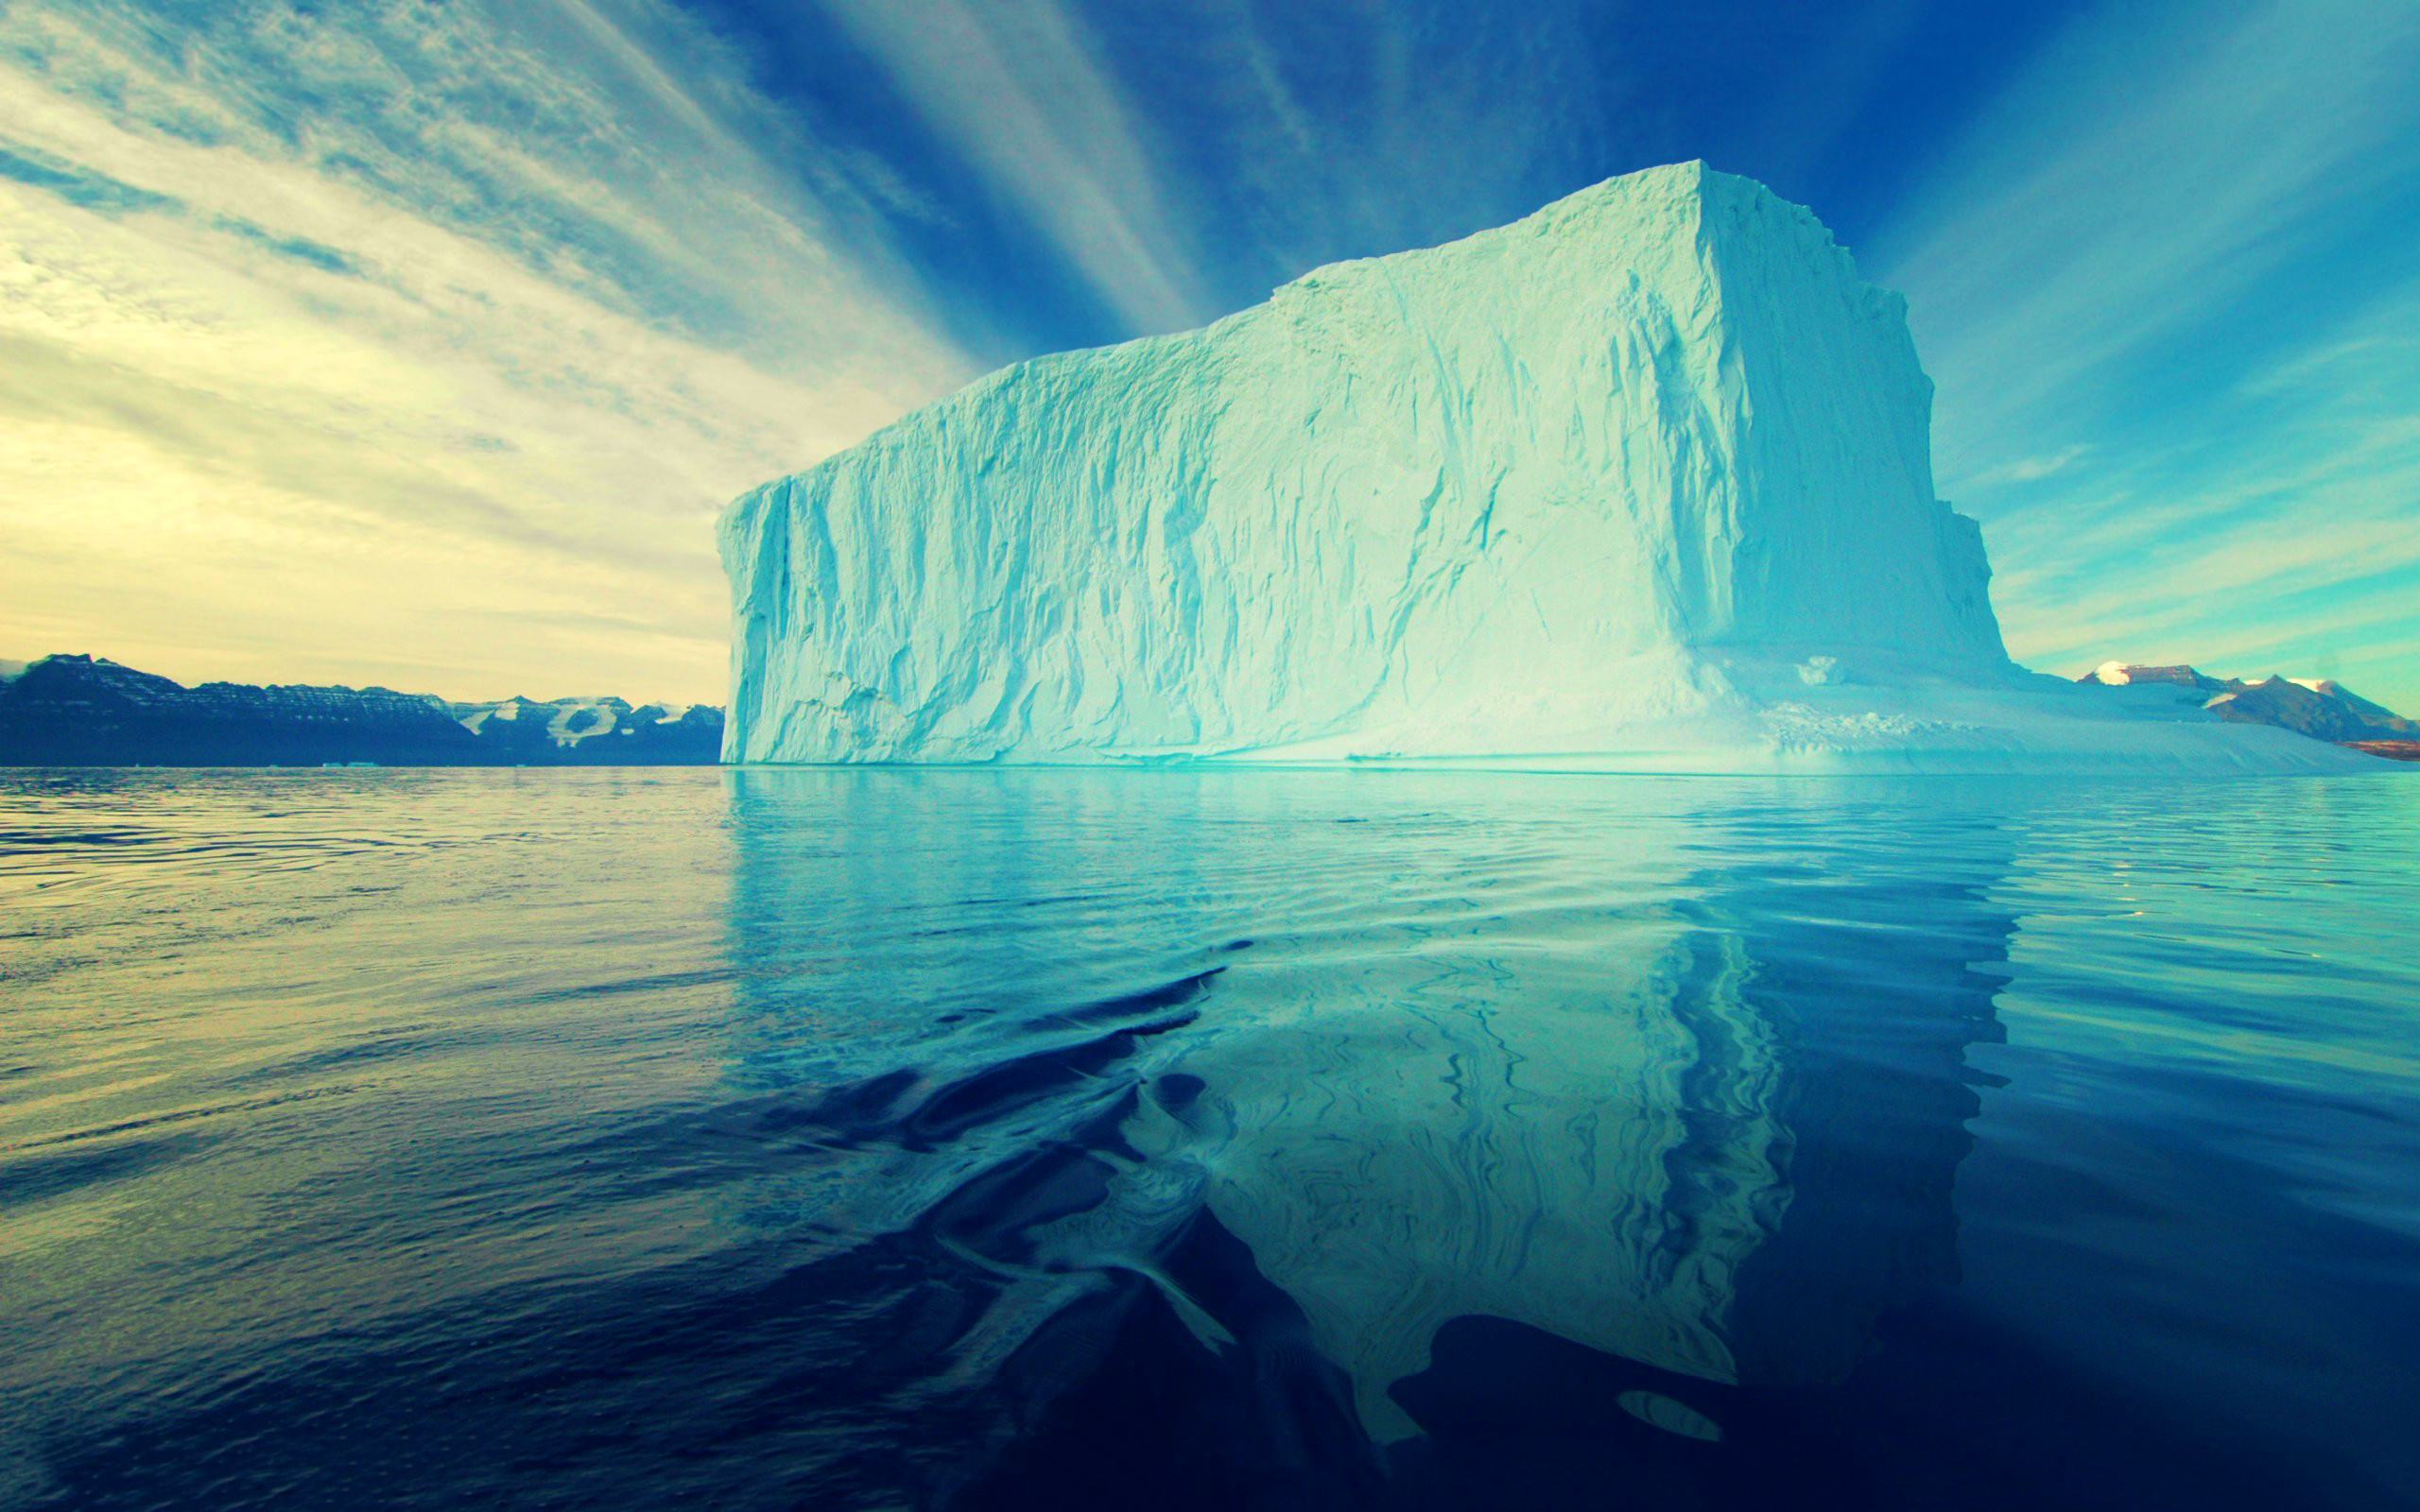 iceberg wallpaper 1080p hd